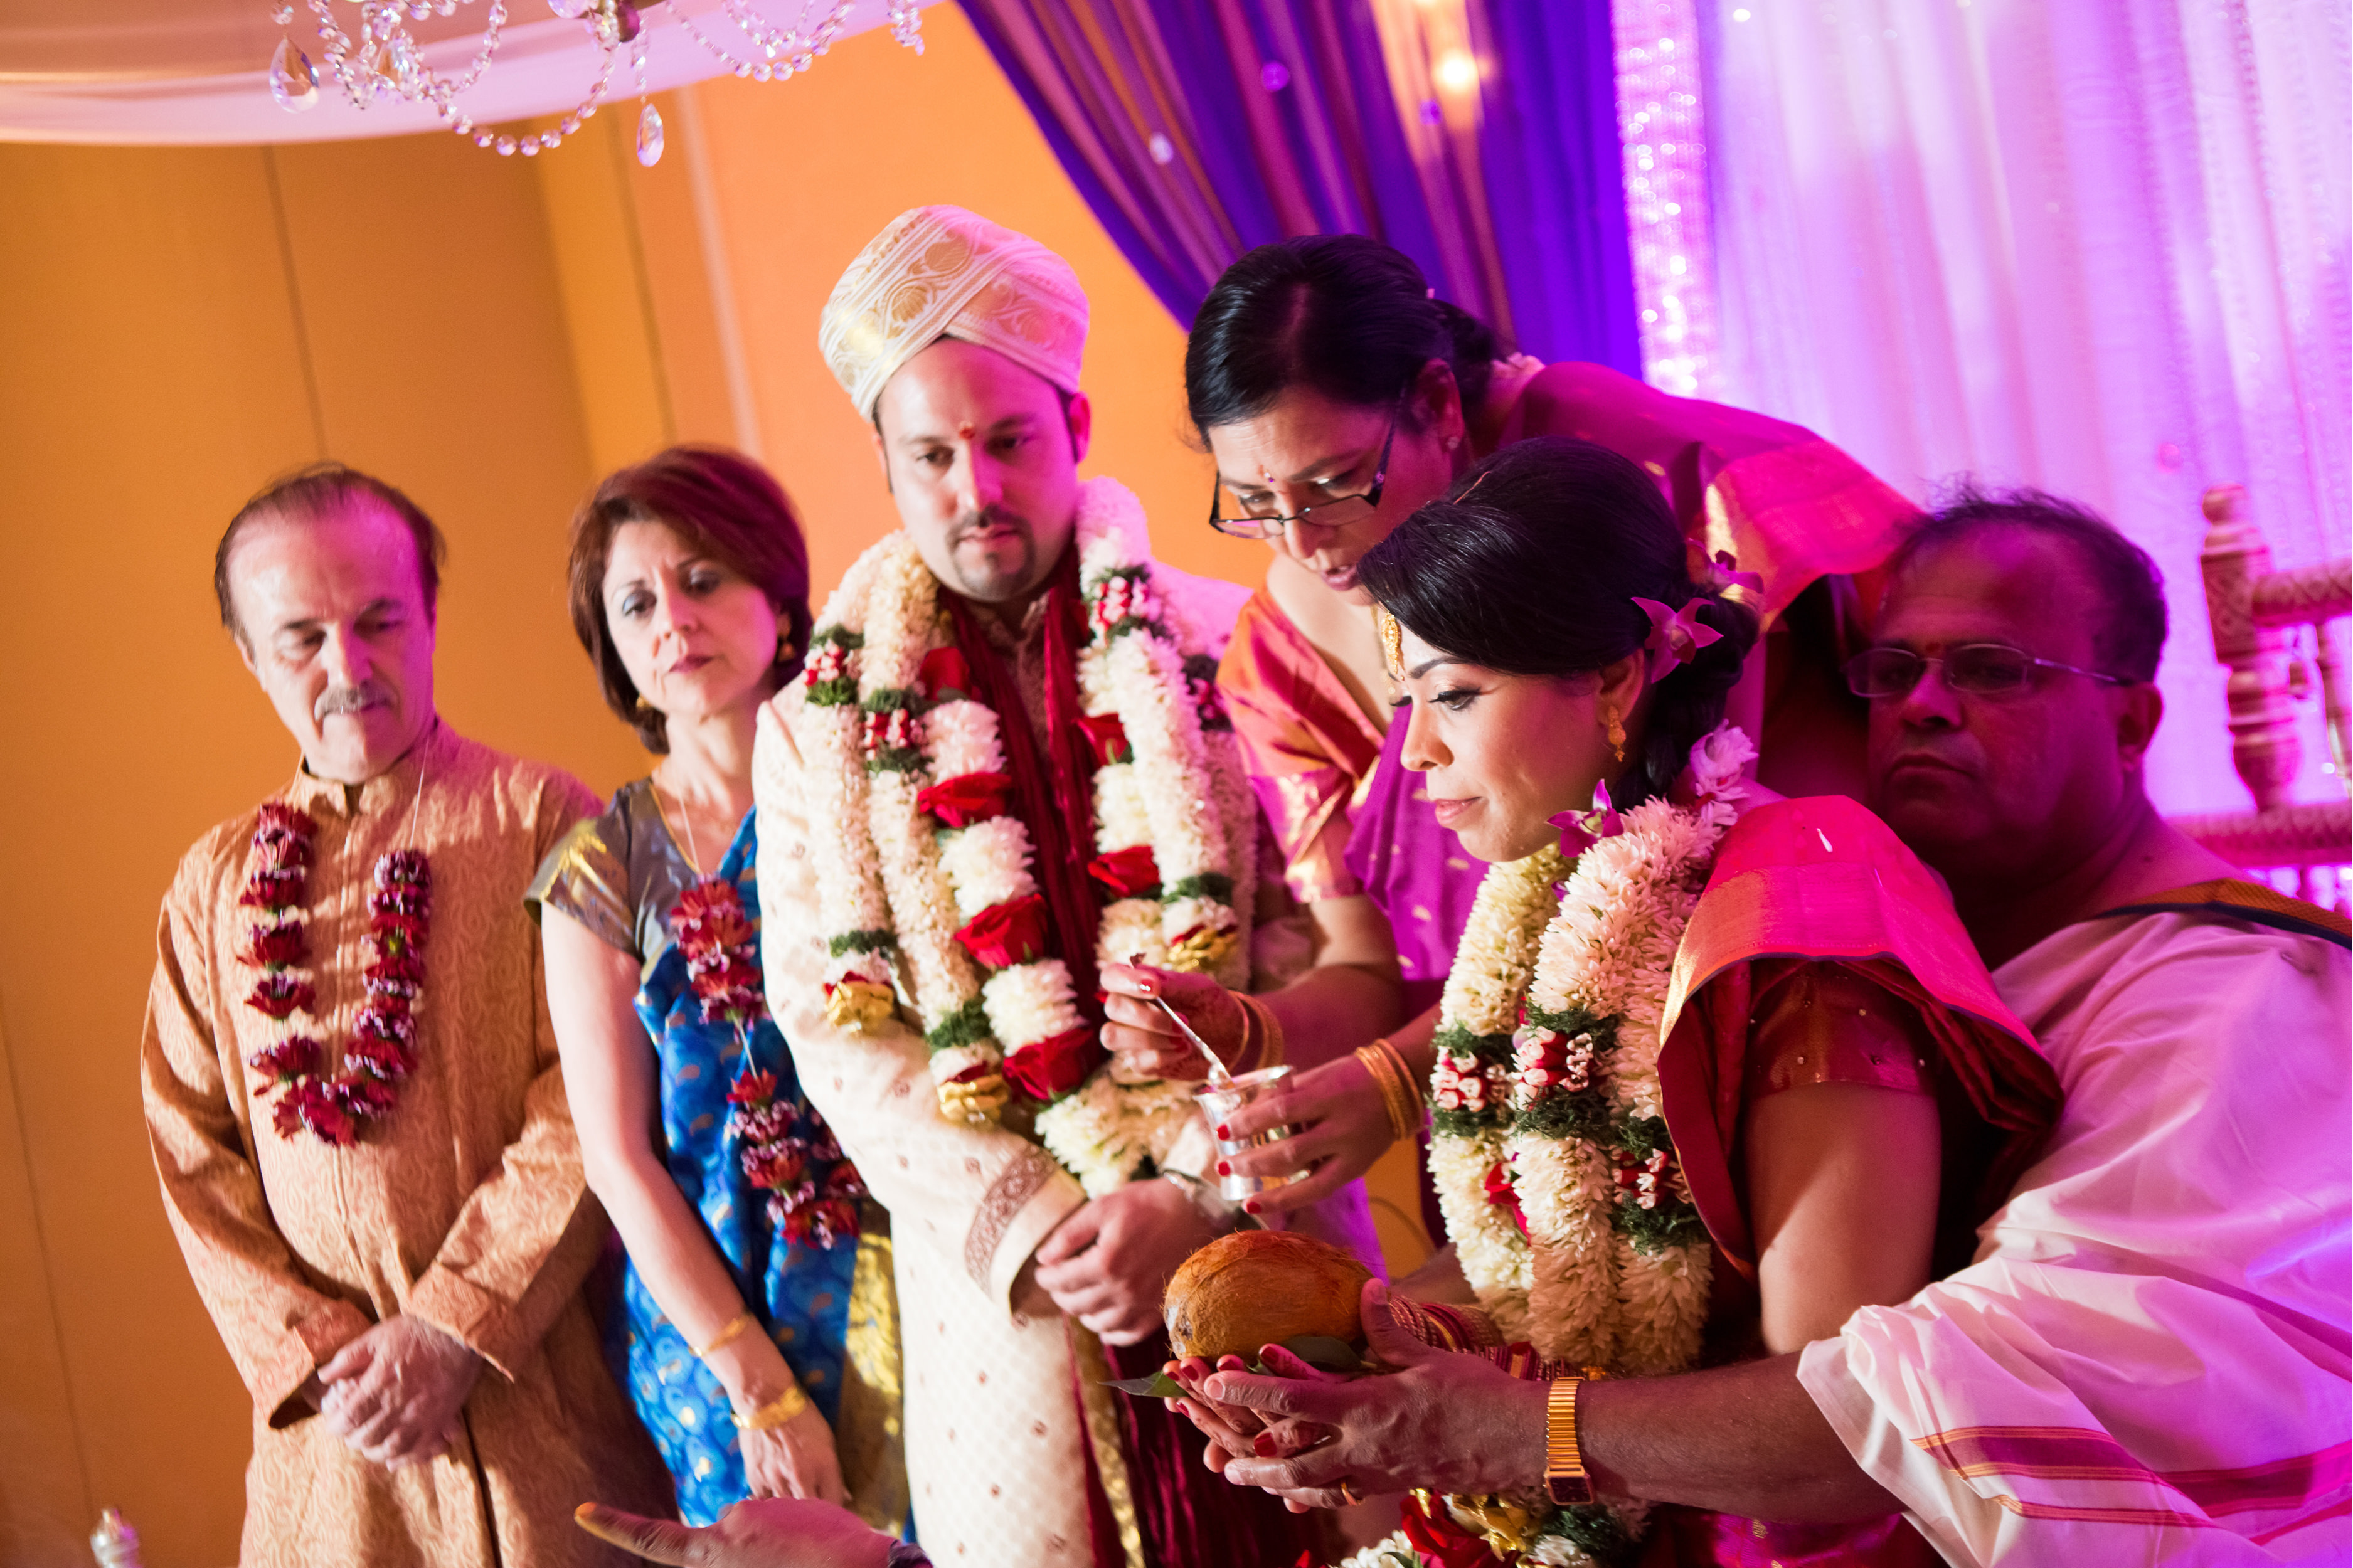 Emma_cleary_photography Indian Wedding17